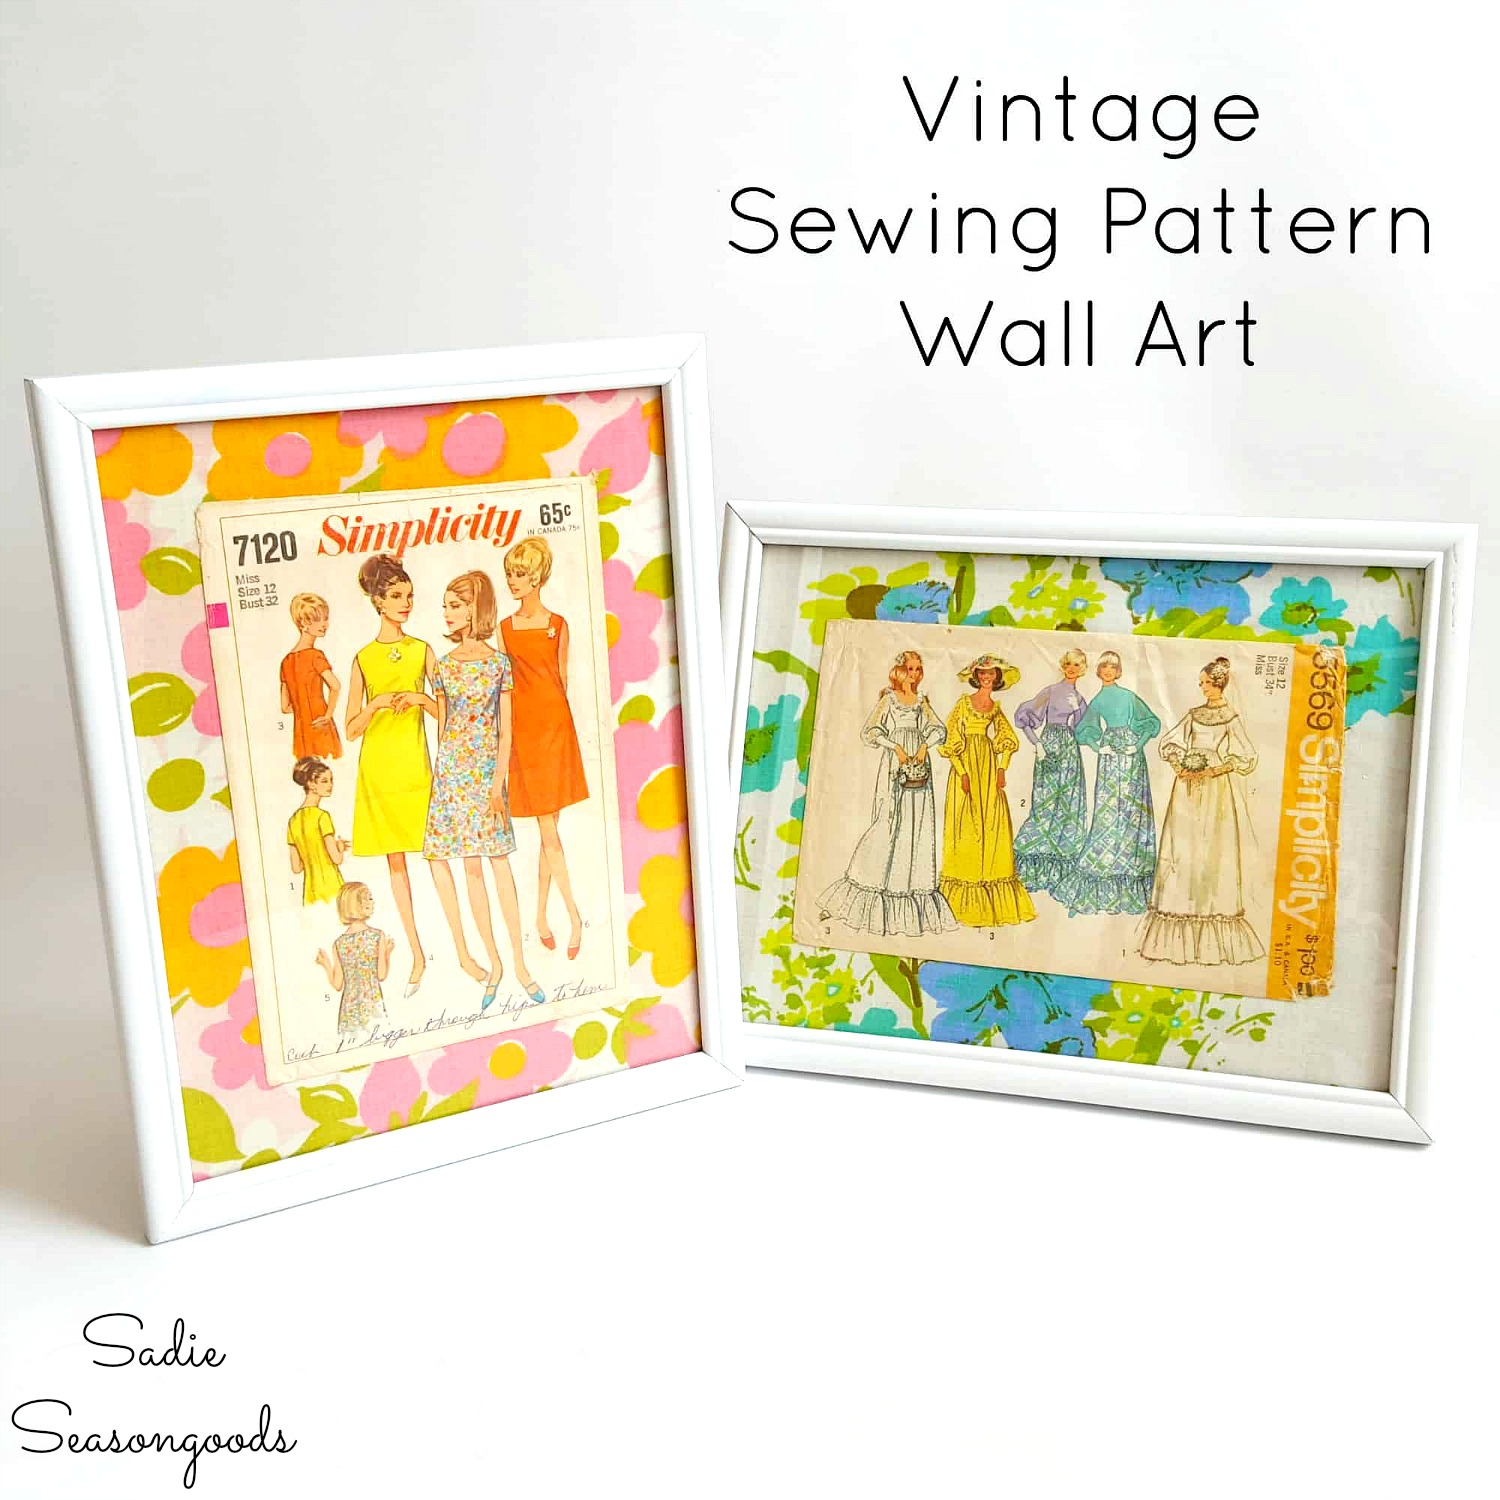 Framed Wall Art for a Craft Room using Vintage Sewing Patterns